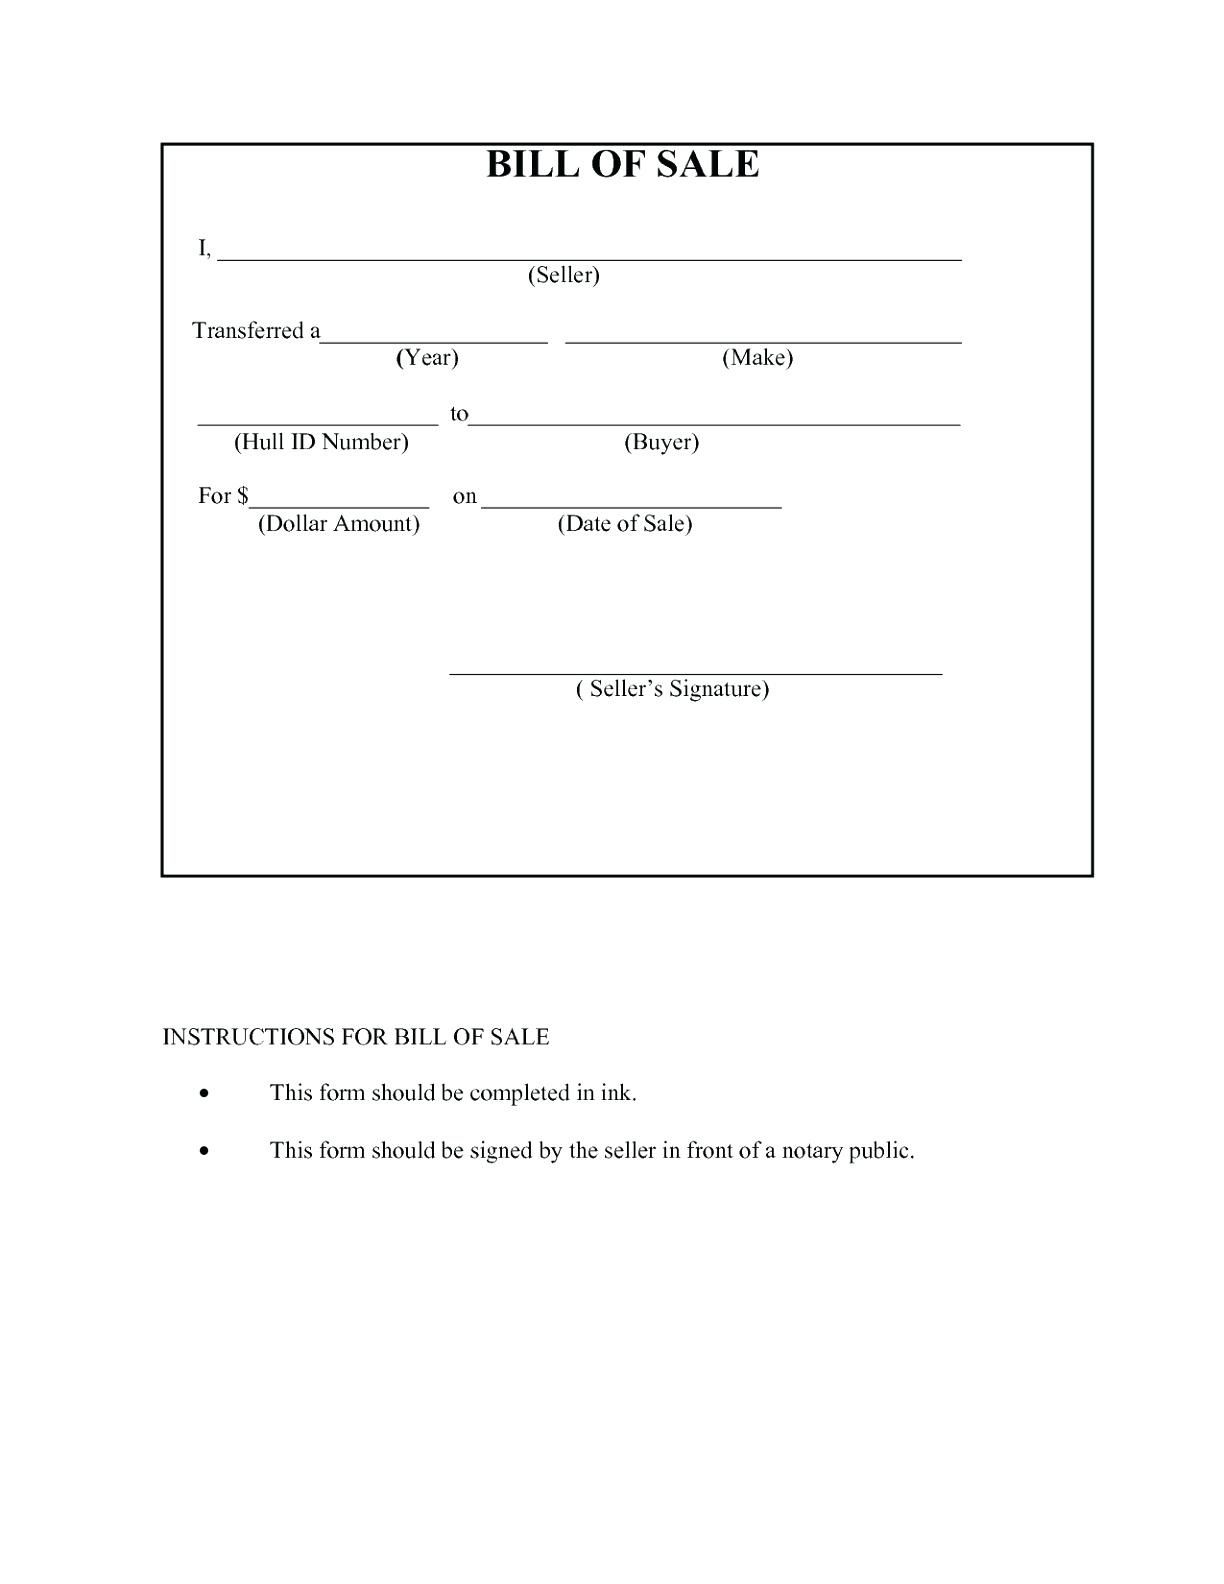 Awesome Free Bill Of Sale Template Ideas For Car Uk Vehicle Texas - Free Printable Bill Of Sale